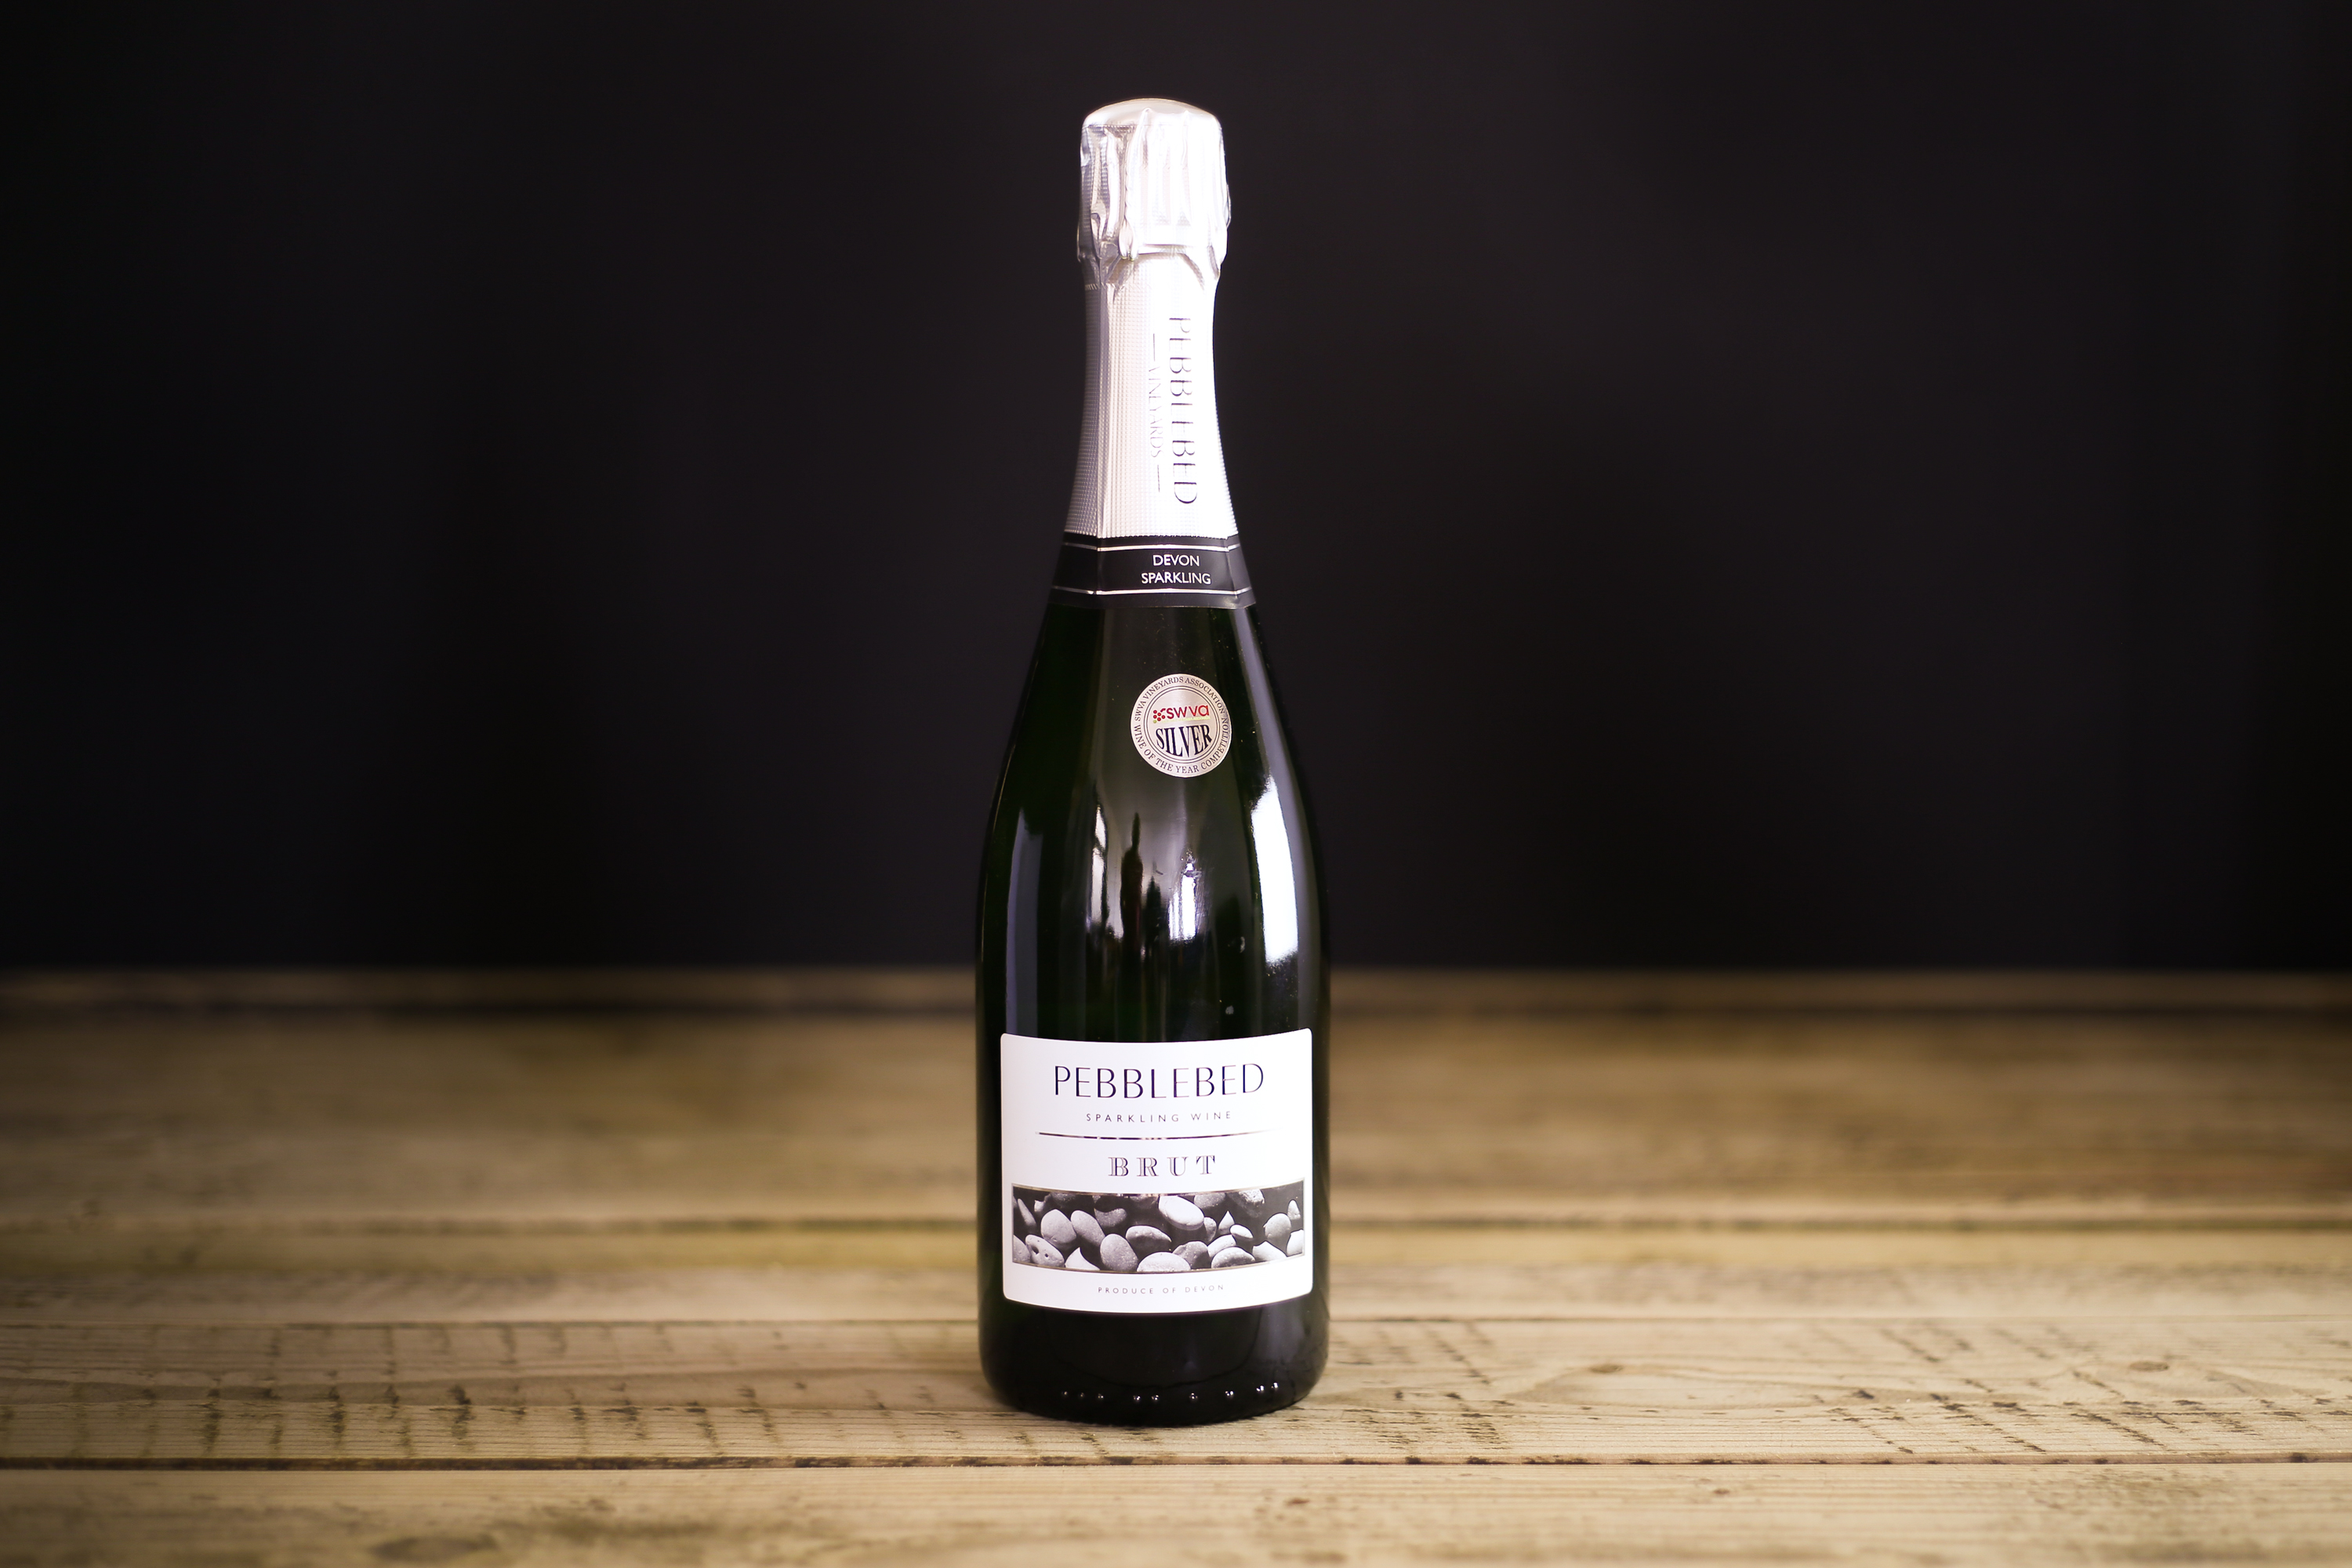 Pebblebed Sparkling White Wine